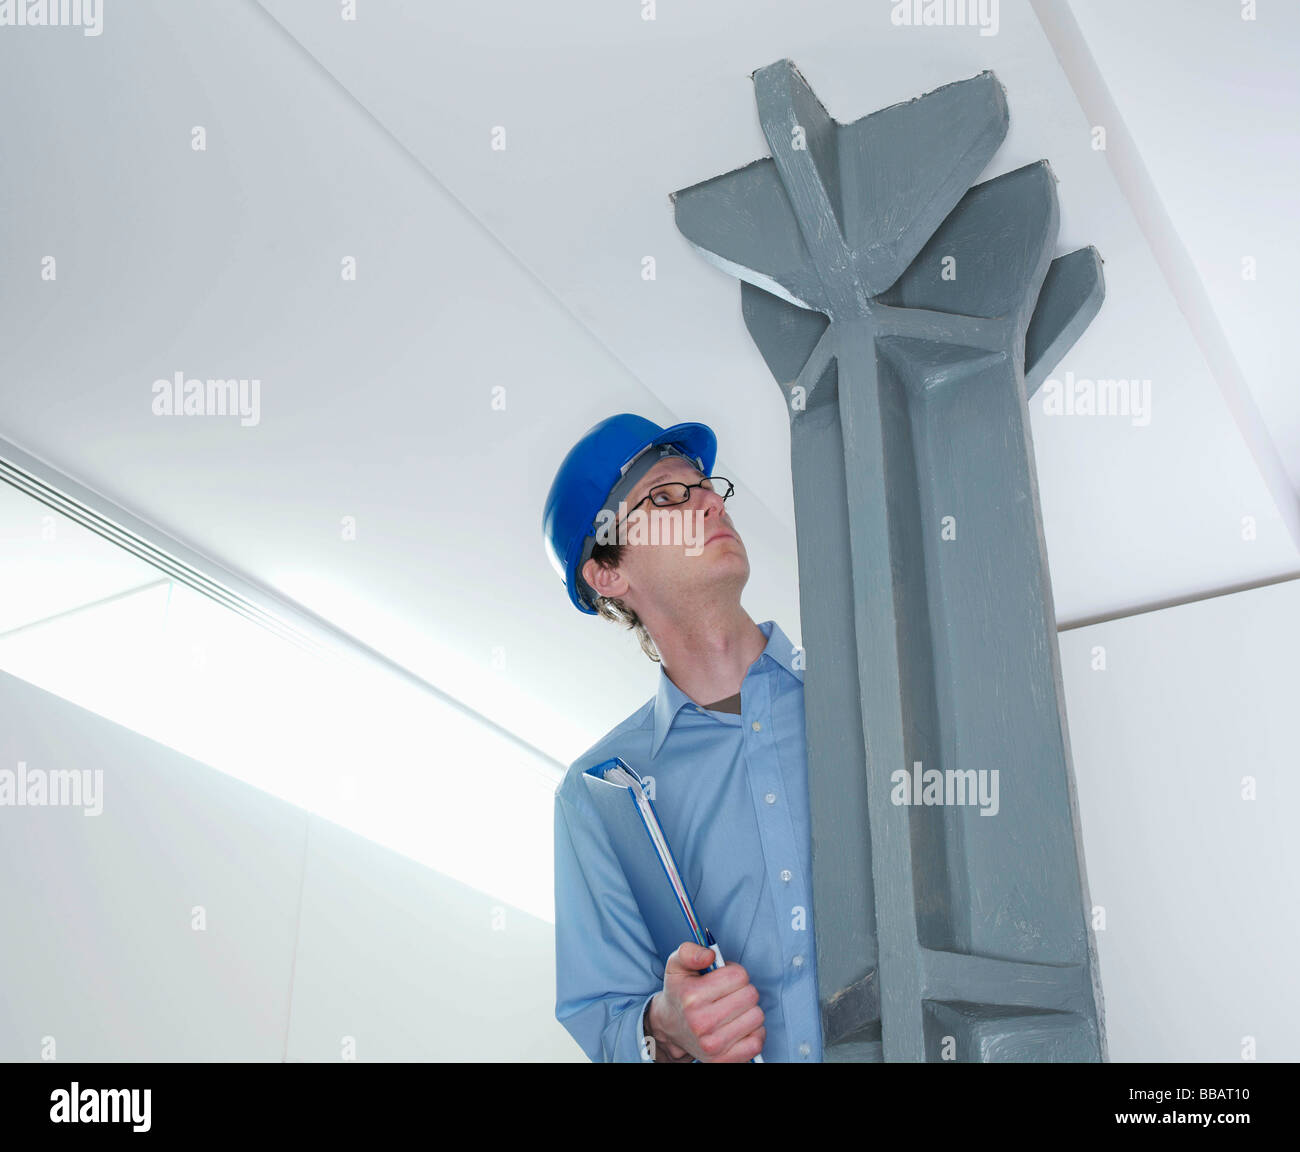 Man in hard hat inspecting steel support - Stock Image